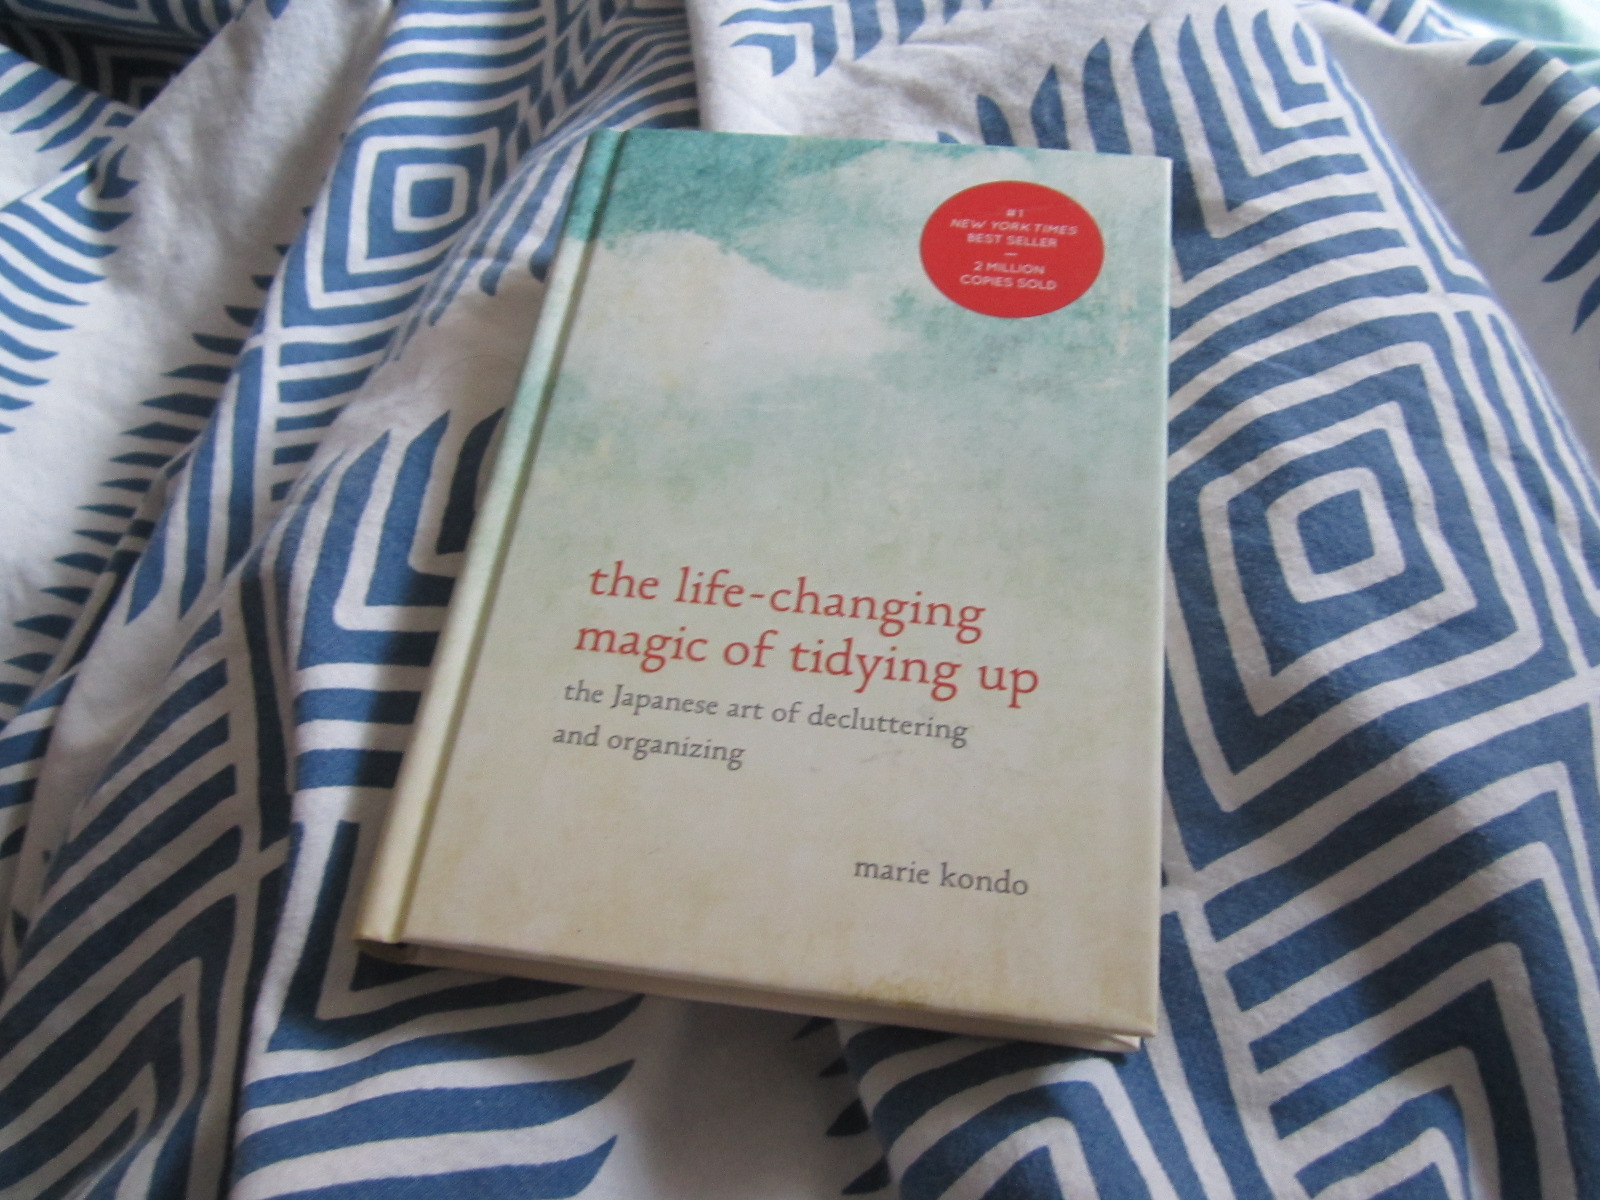 marie kondo the life chaning magic of tidying up